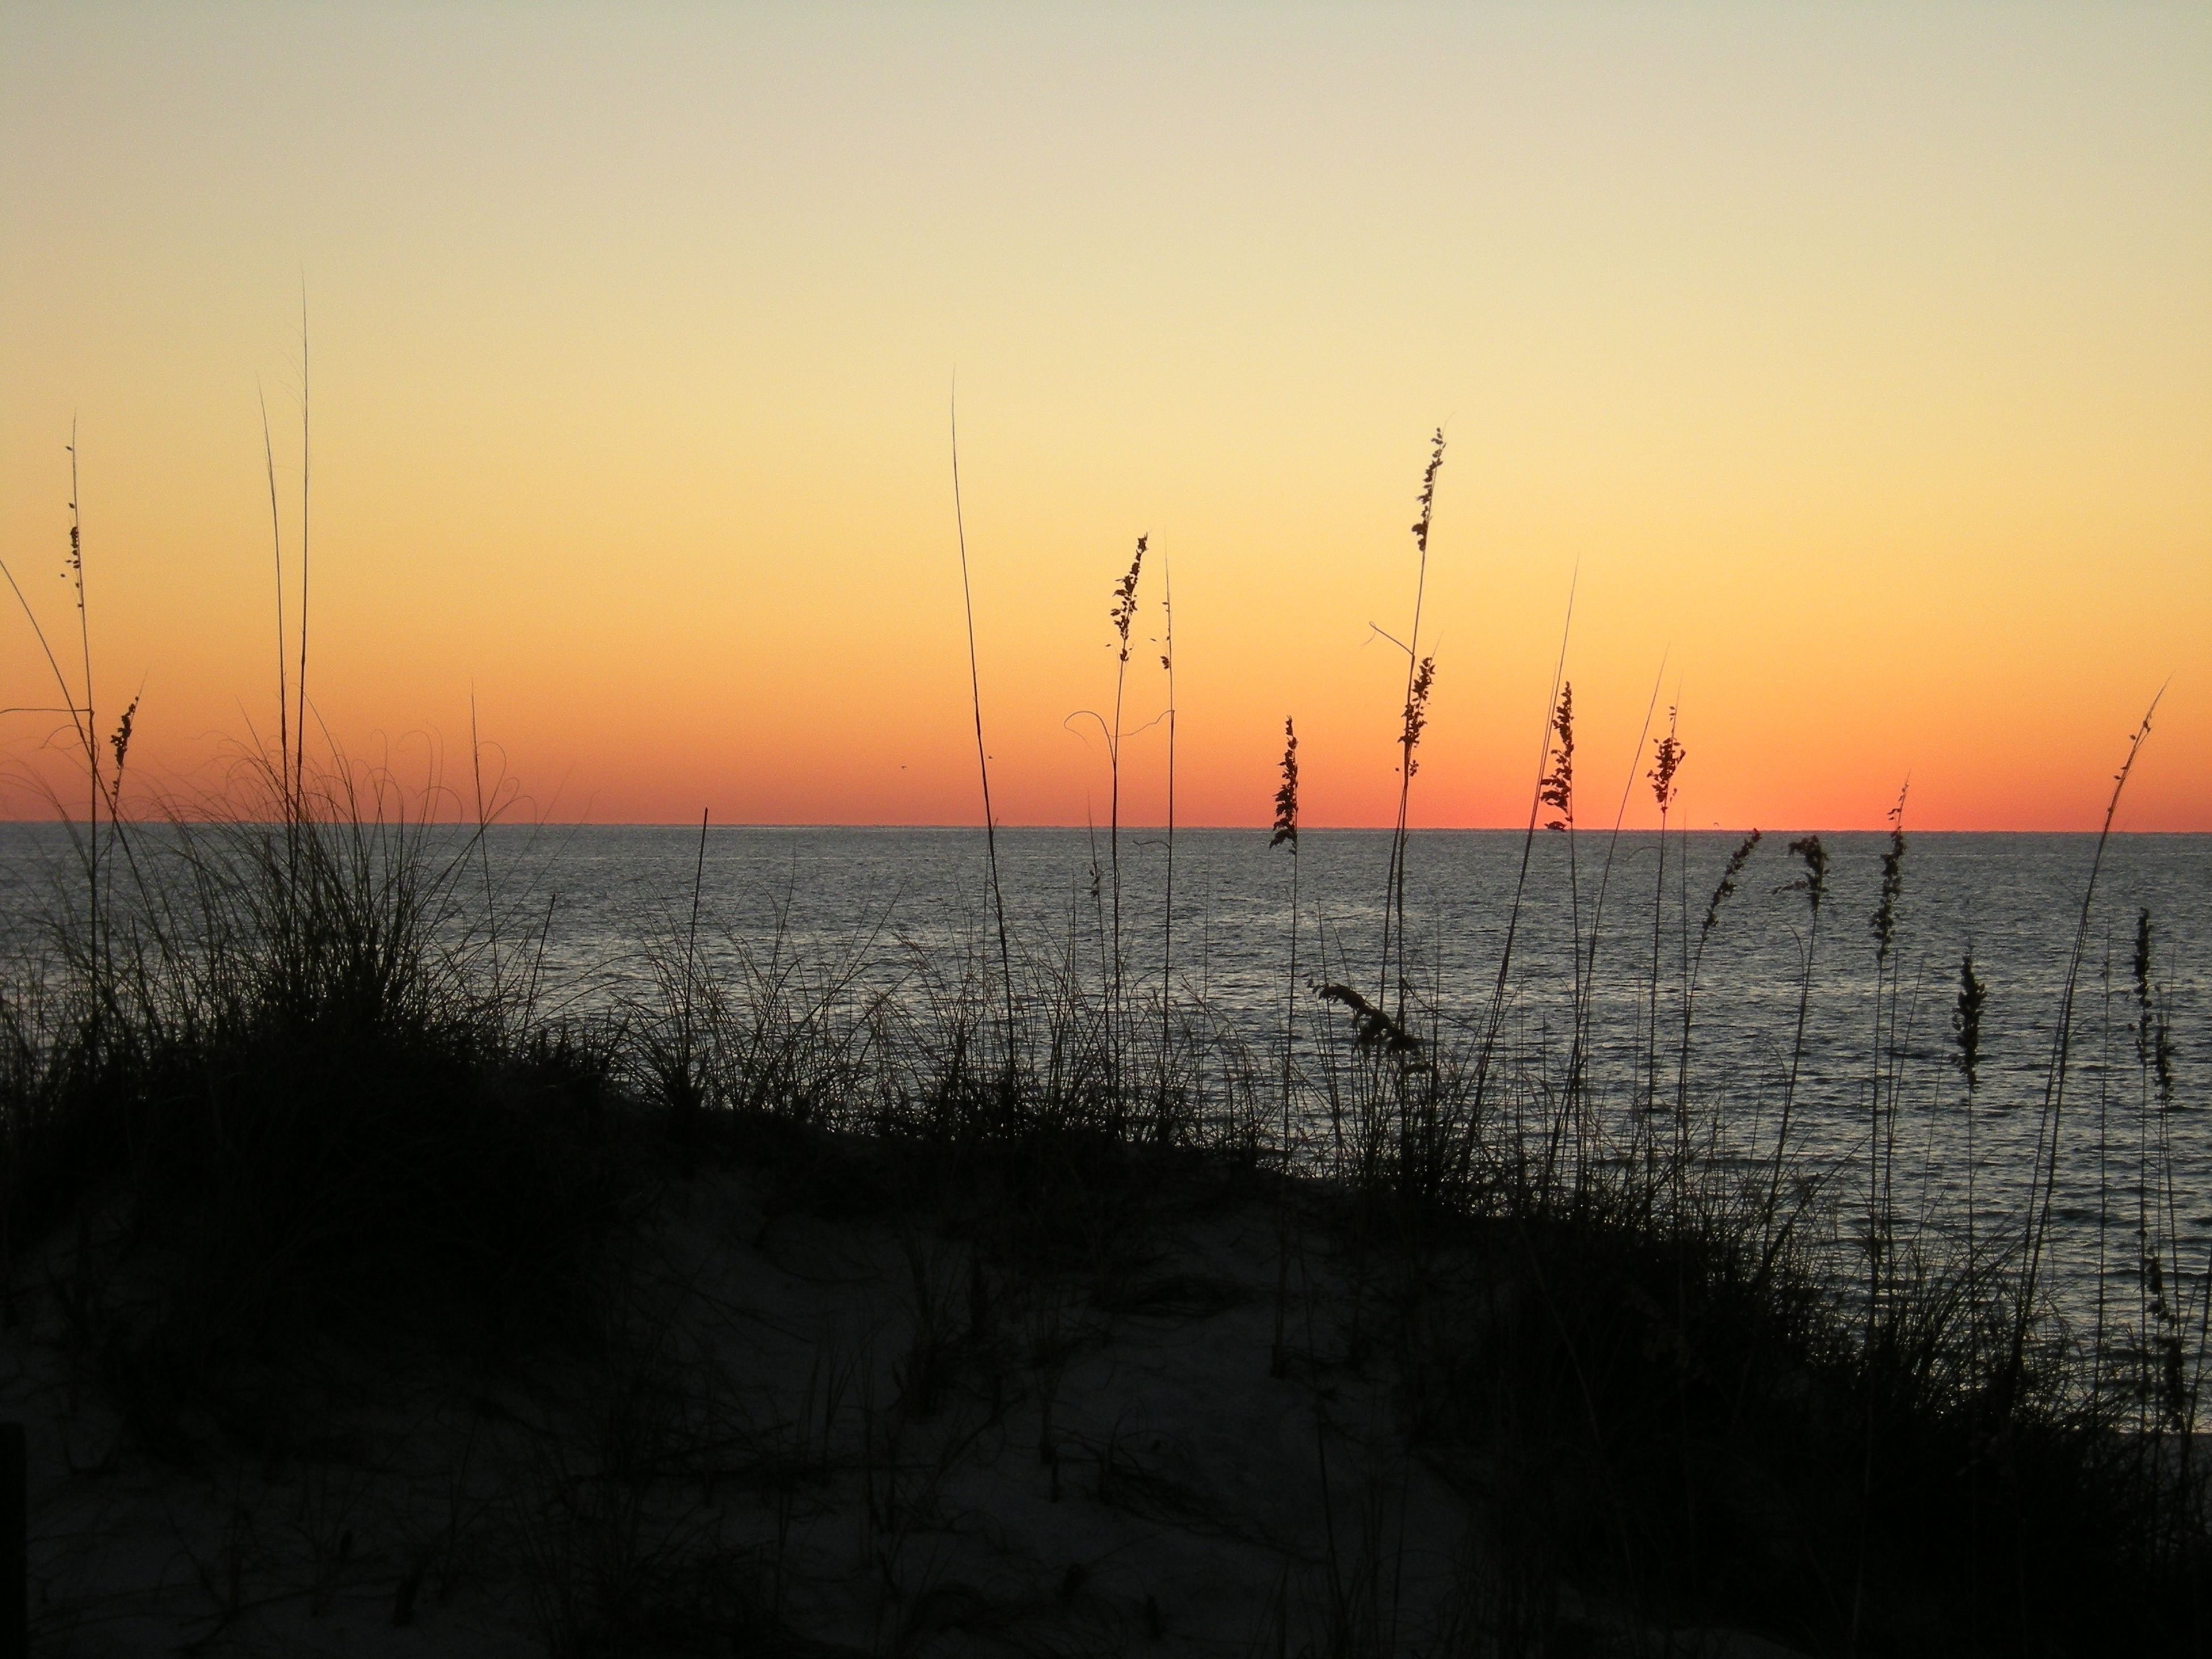 sunset, tranquil scene, sea, nature, tranquility, beauty in nature, scenics, water, horizon over water, silhouette, outdoors, no people, idyllic, beach, sky, growth, marram grass, travel destinations, grass, day